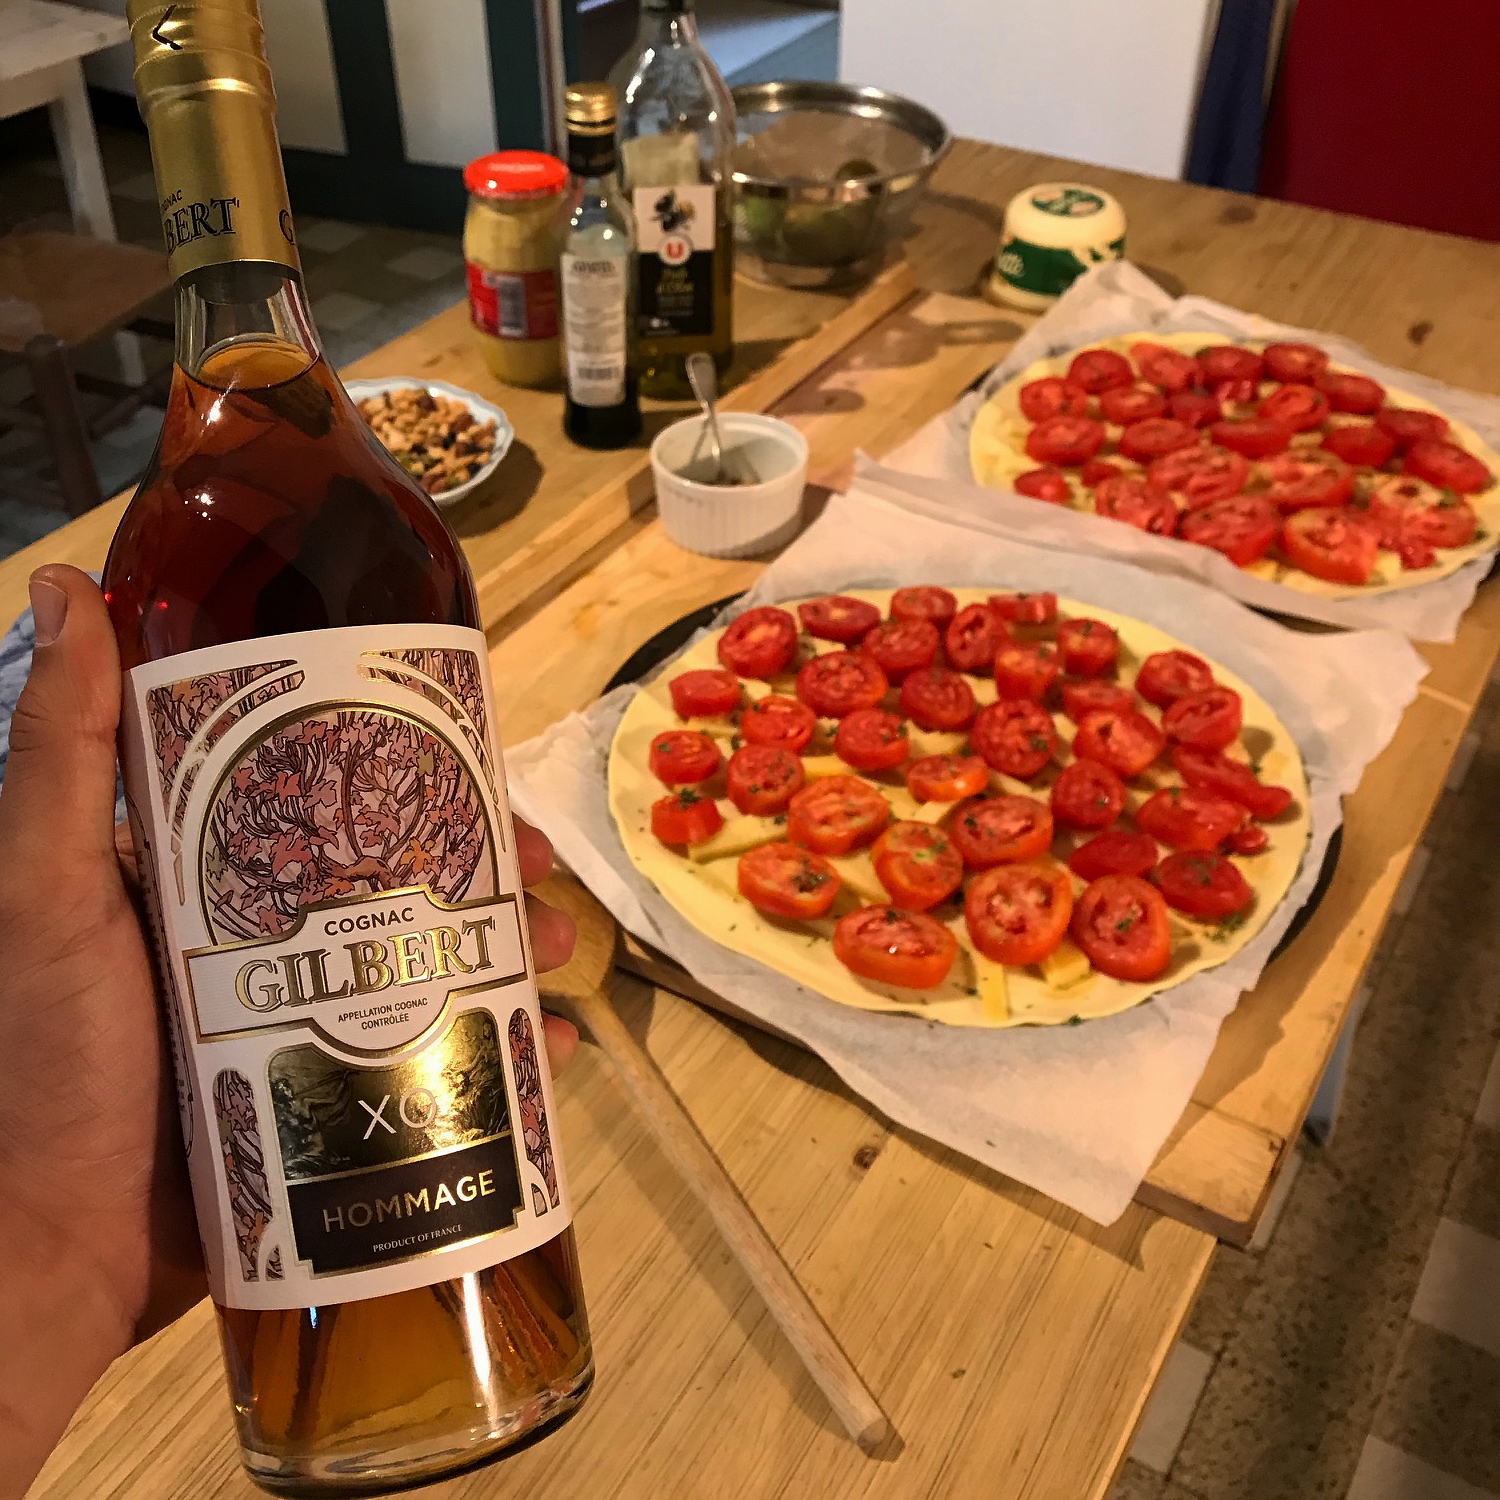 A bottle of Gilbert XO with Pizzas in the background